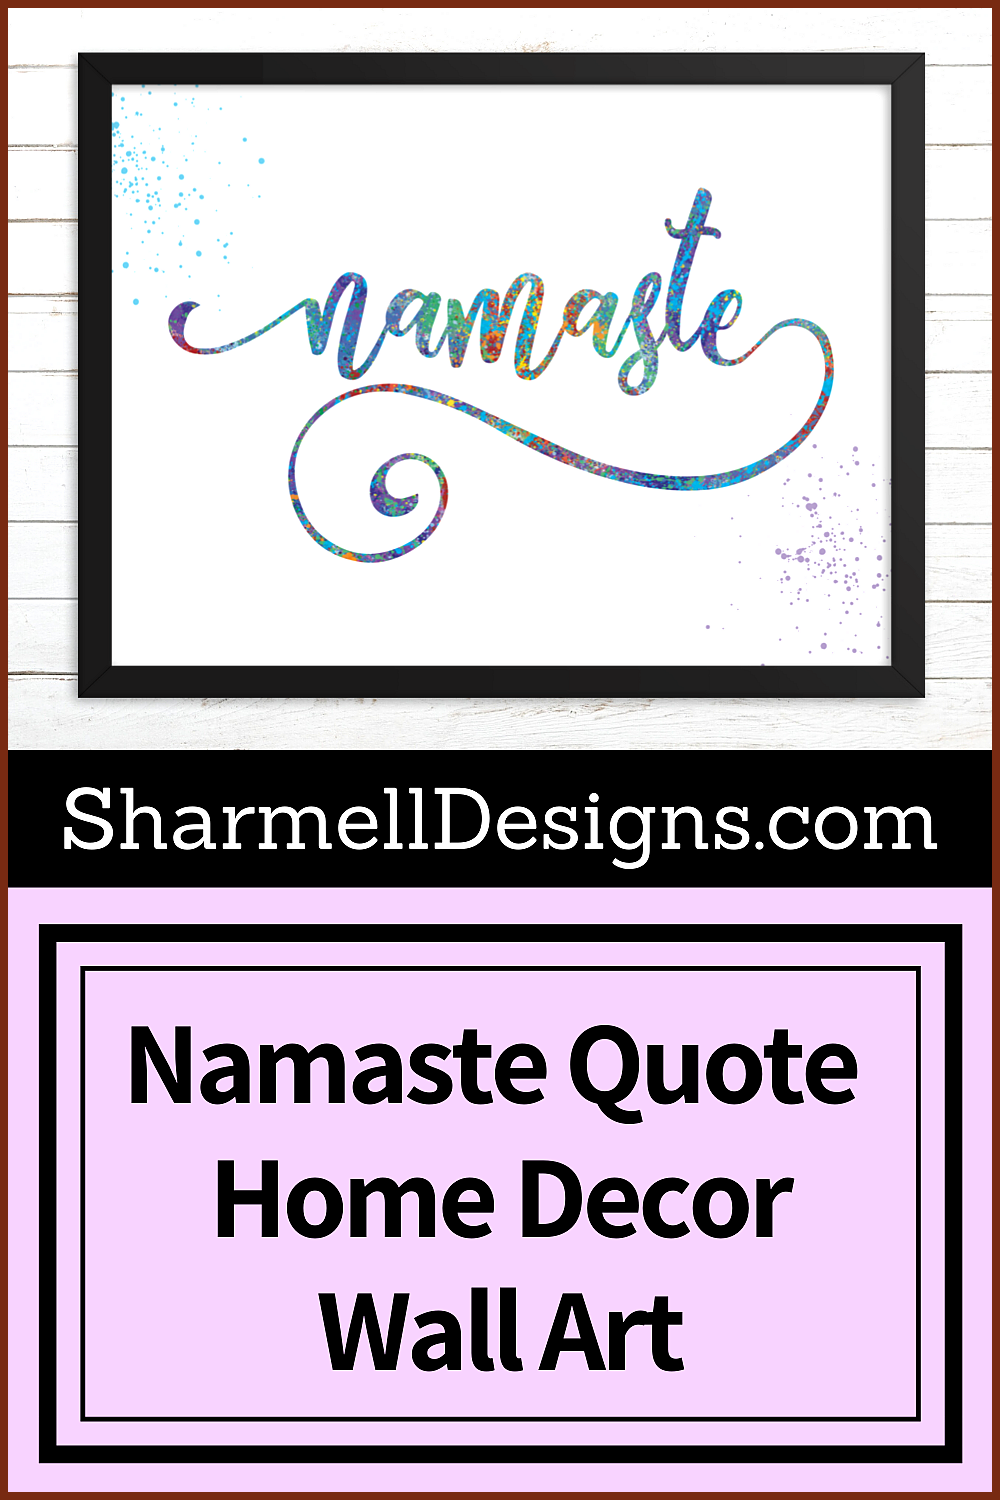 Magenta Fitness Gorgeous printable wall art  Namaste  quote Perfect inspirational quote for home acc...